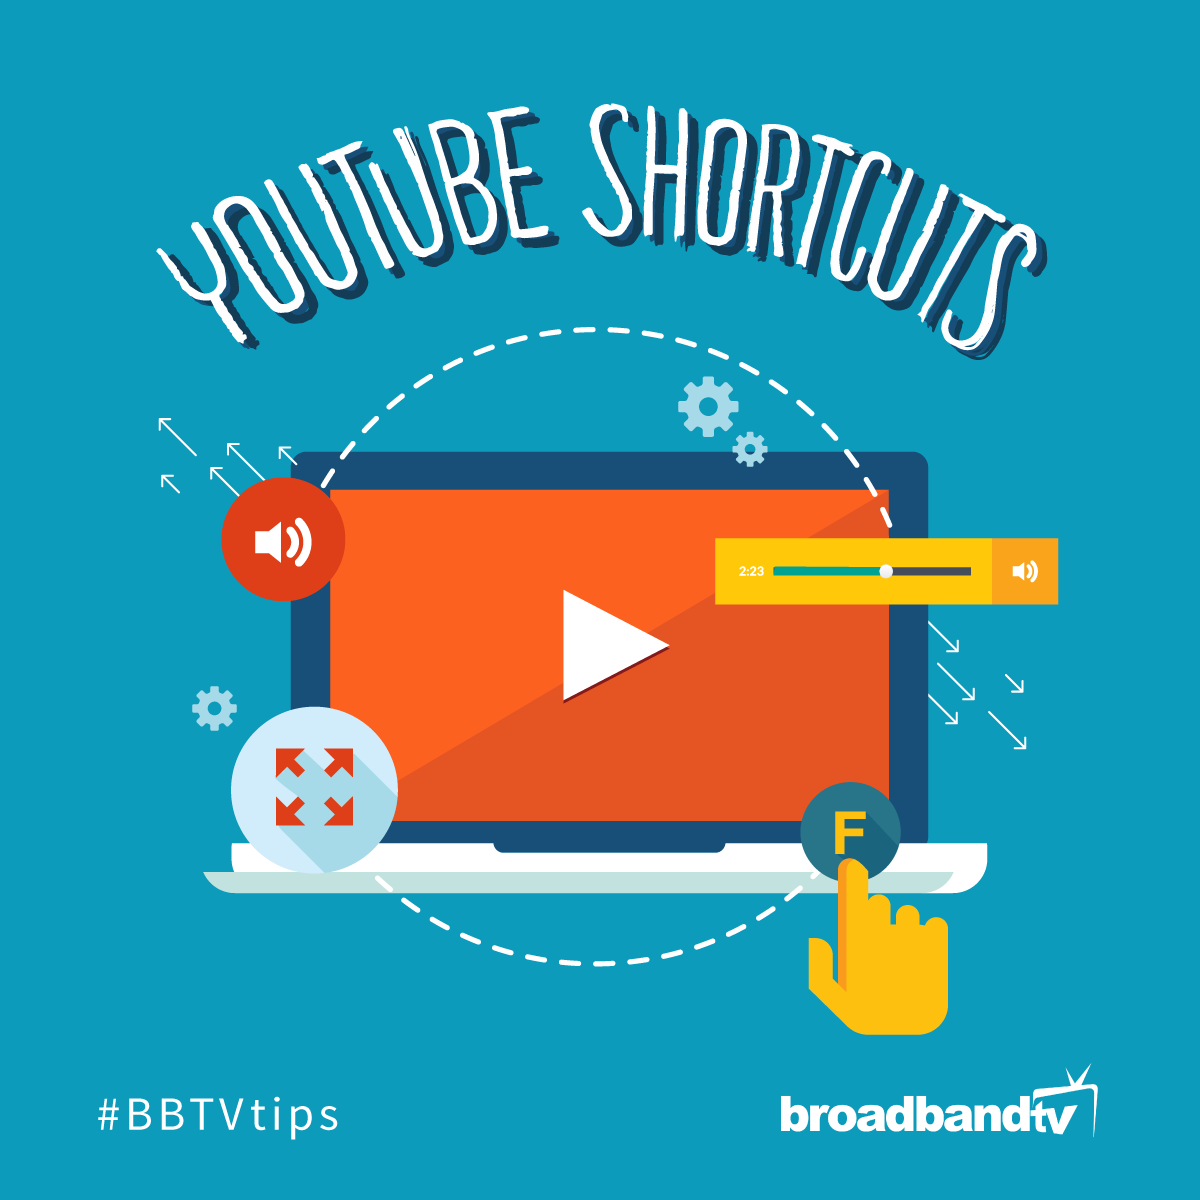 BBTVTips_Facebook_YTShortcuts